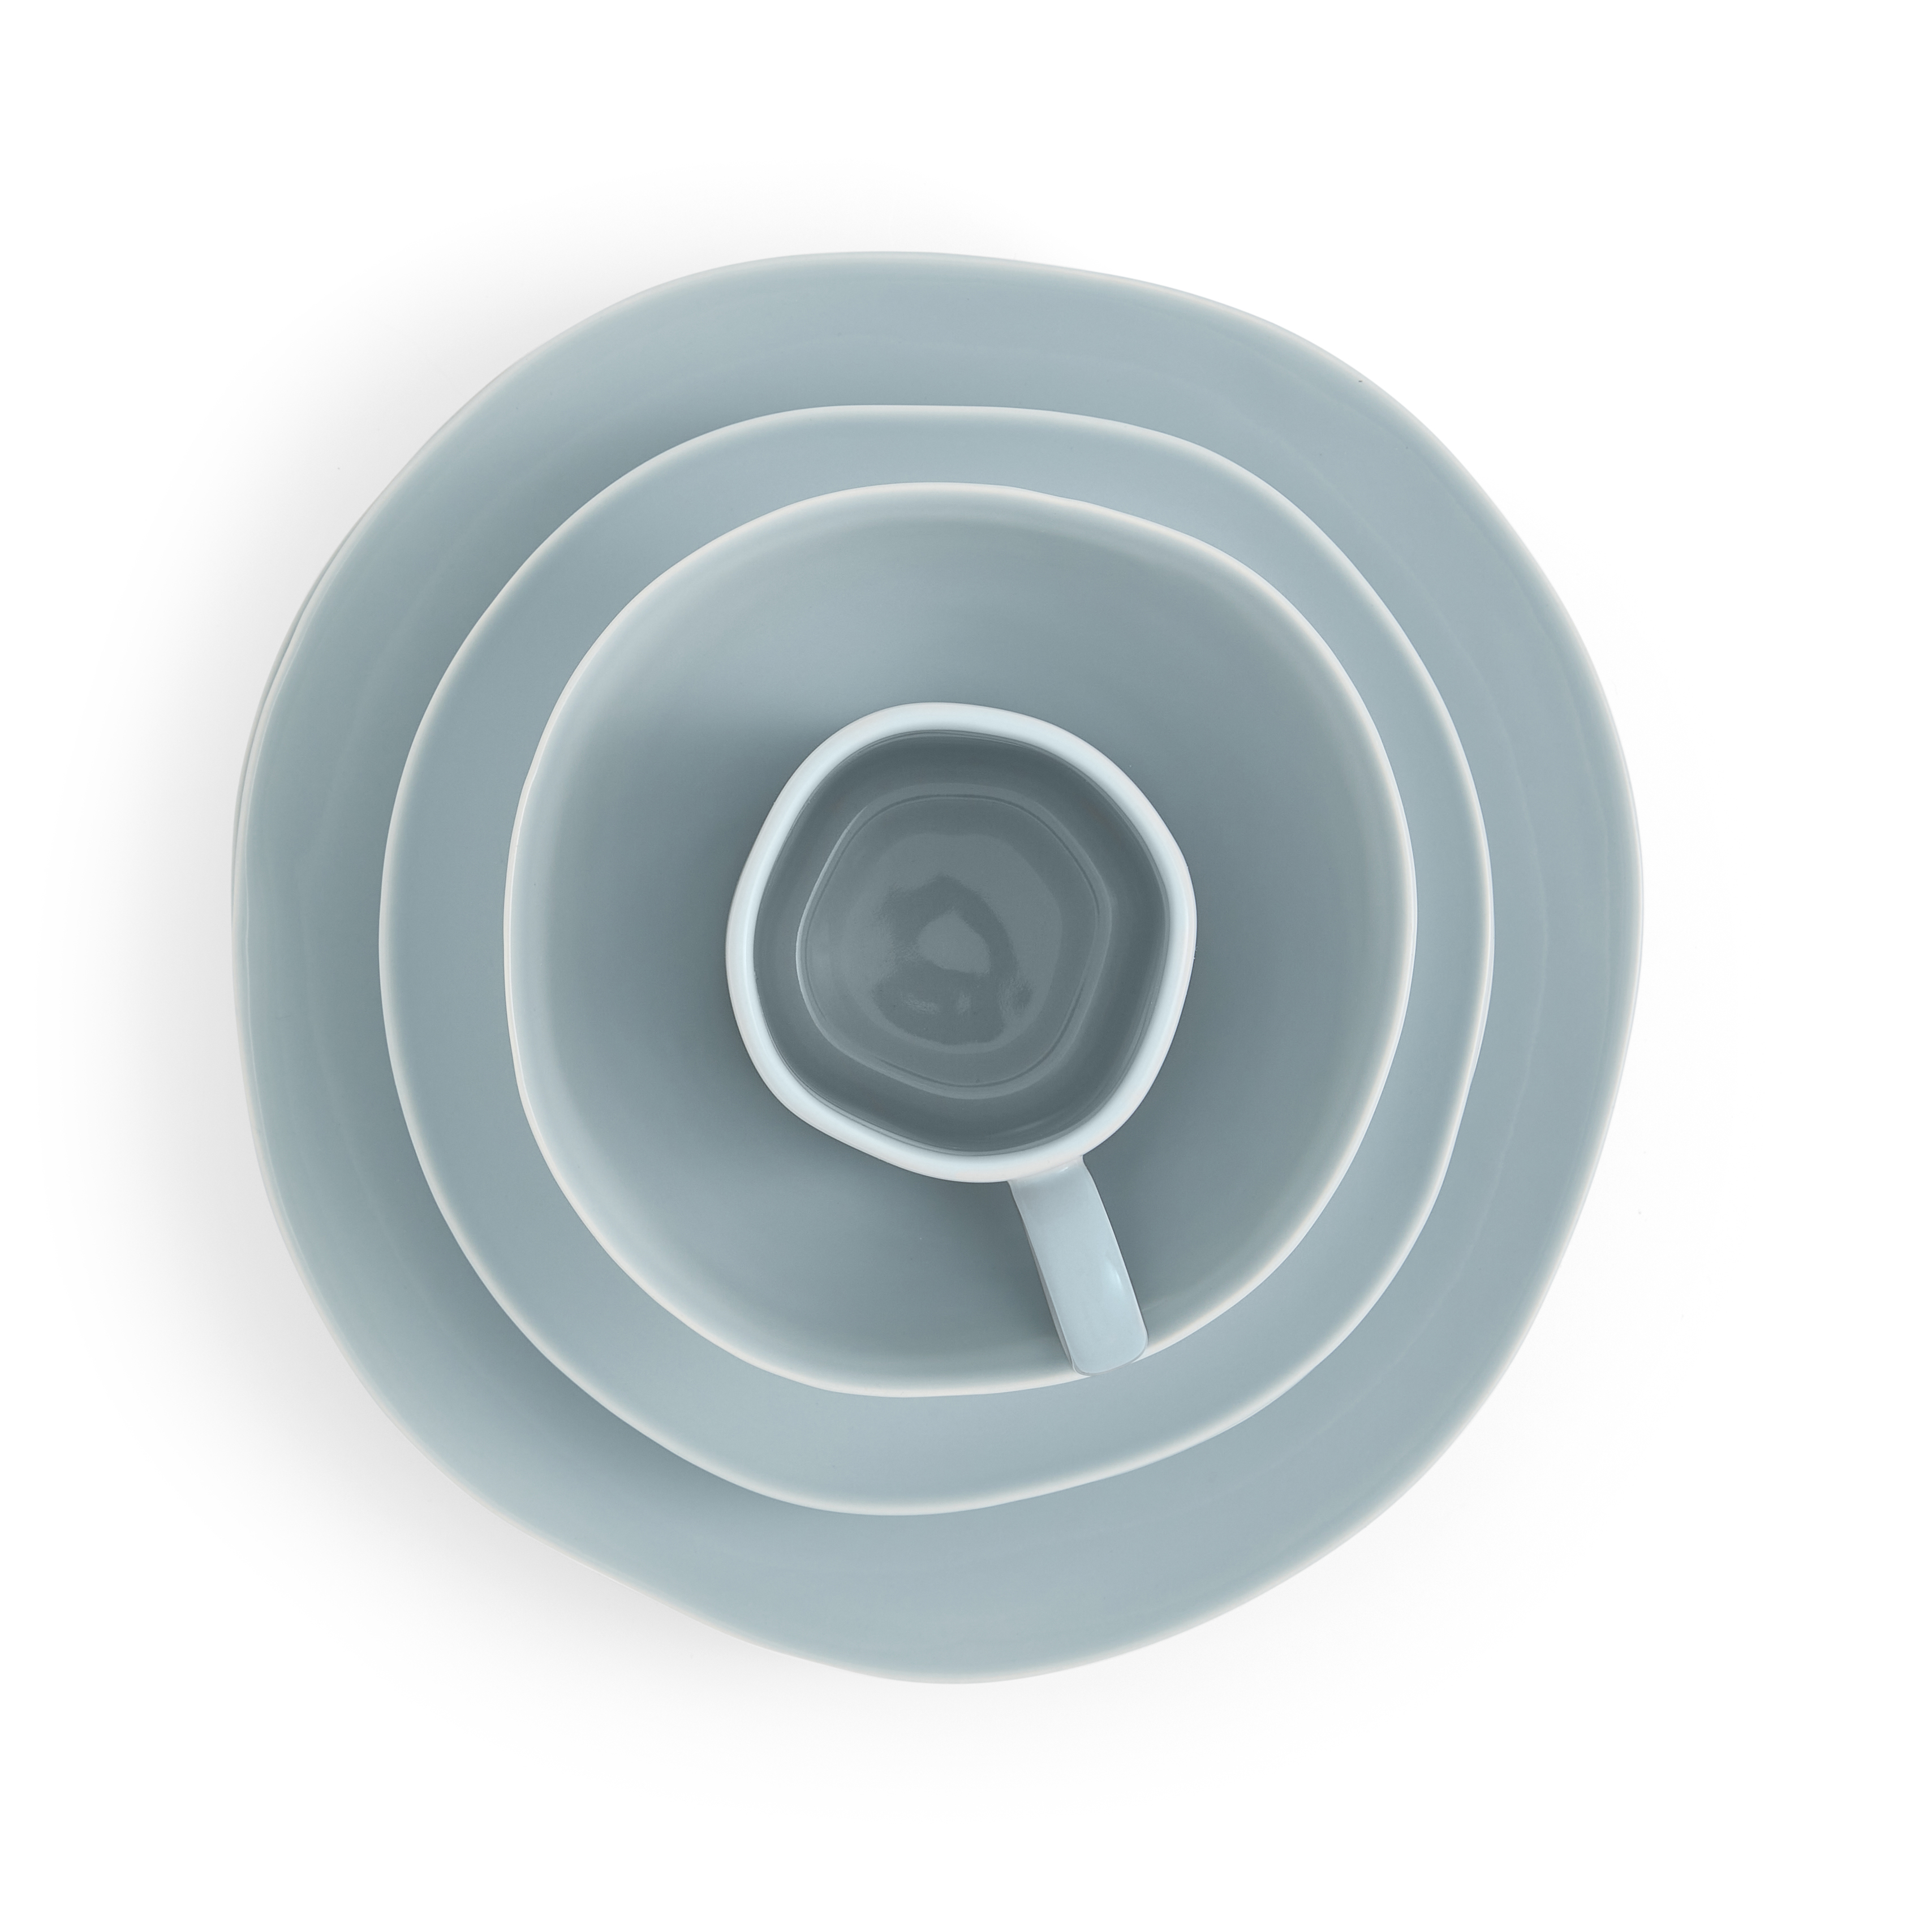 Sophie Conran Arbor 4 Piece Place Setting- Robin's Egg image number 1